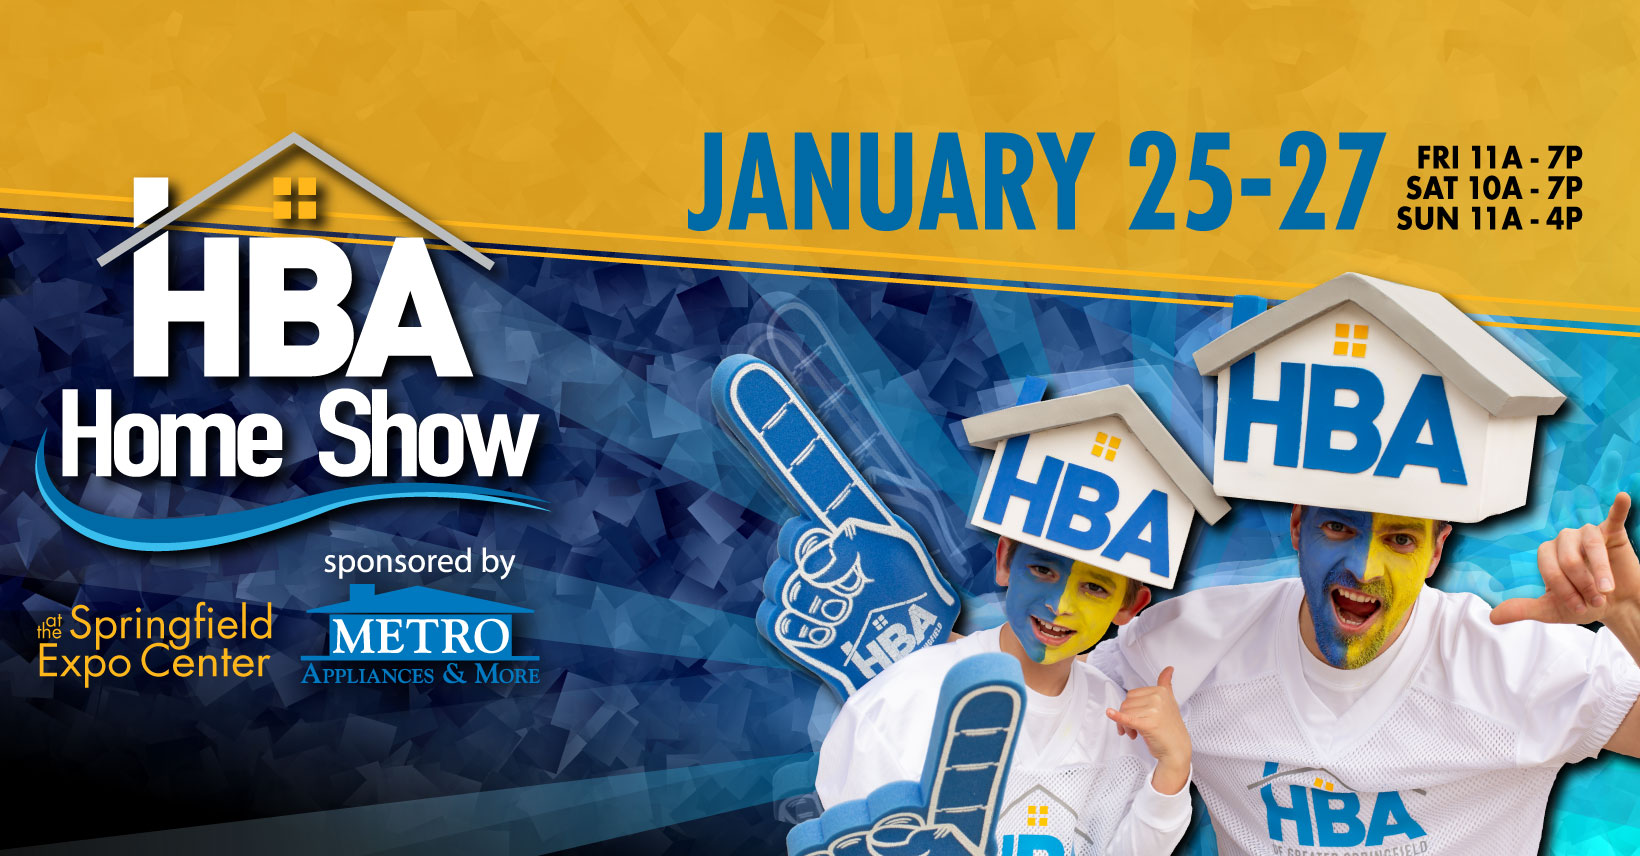 HBA Home Show 2019 Facebook Cover